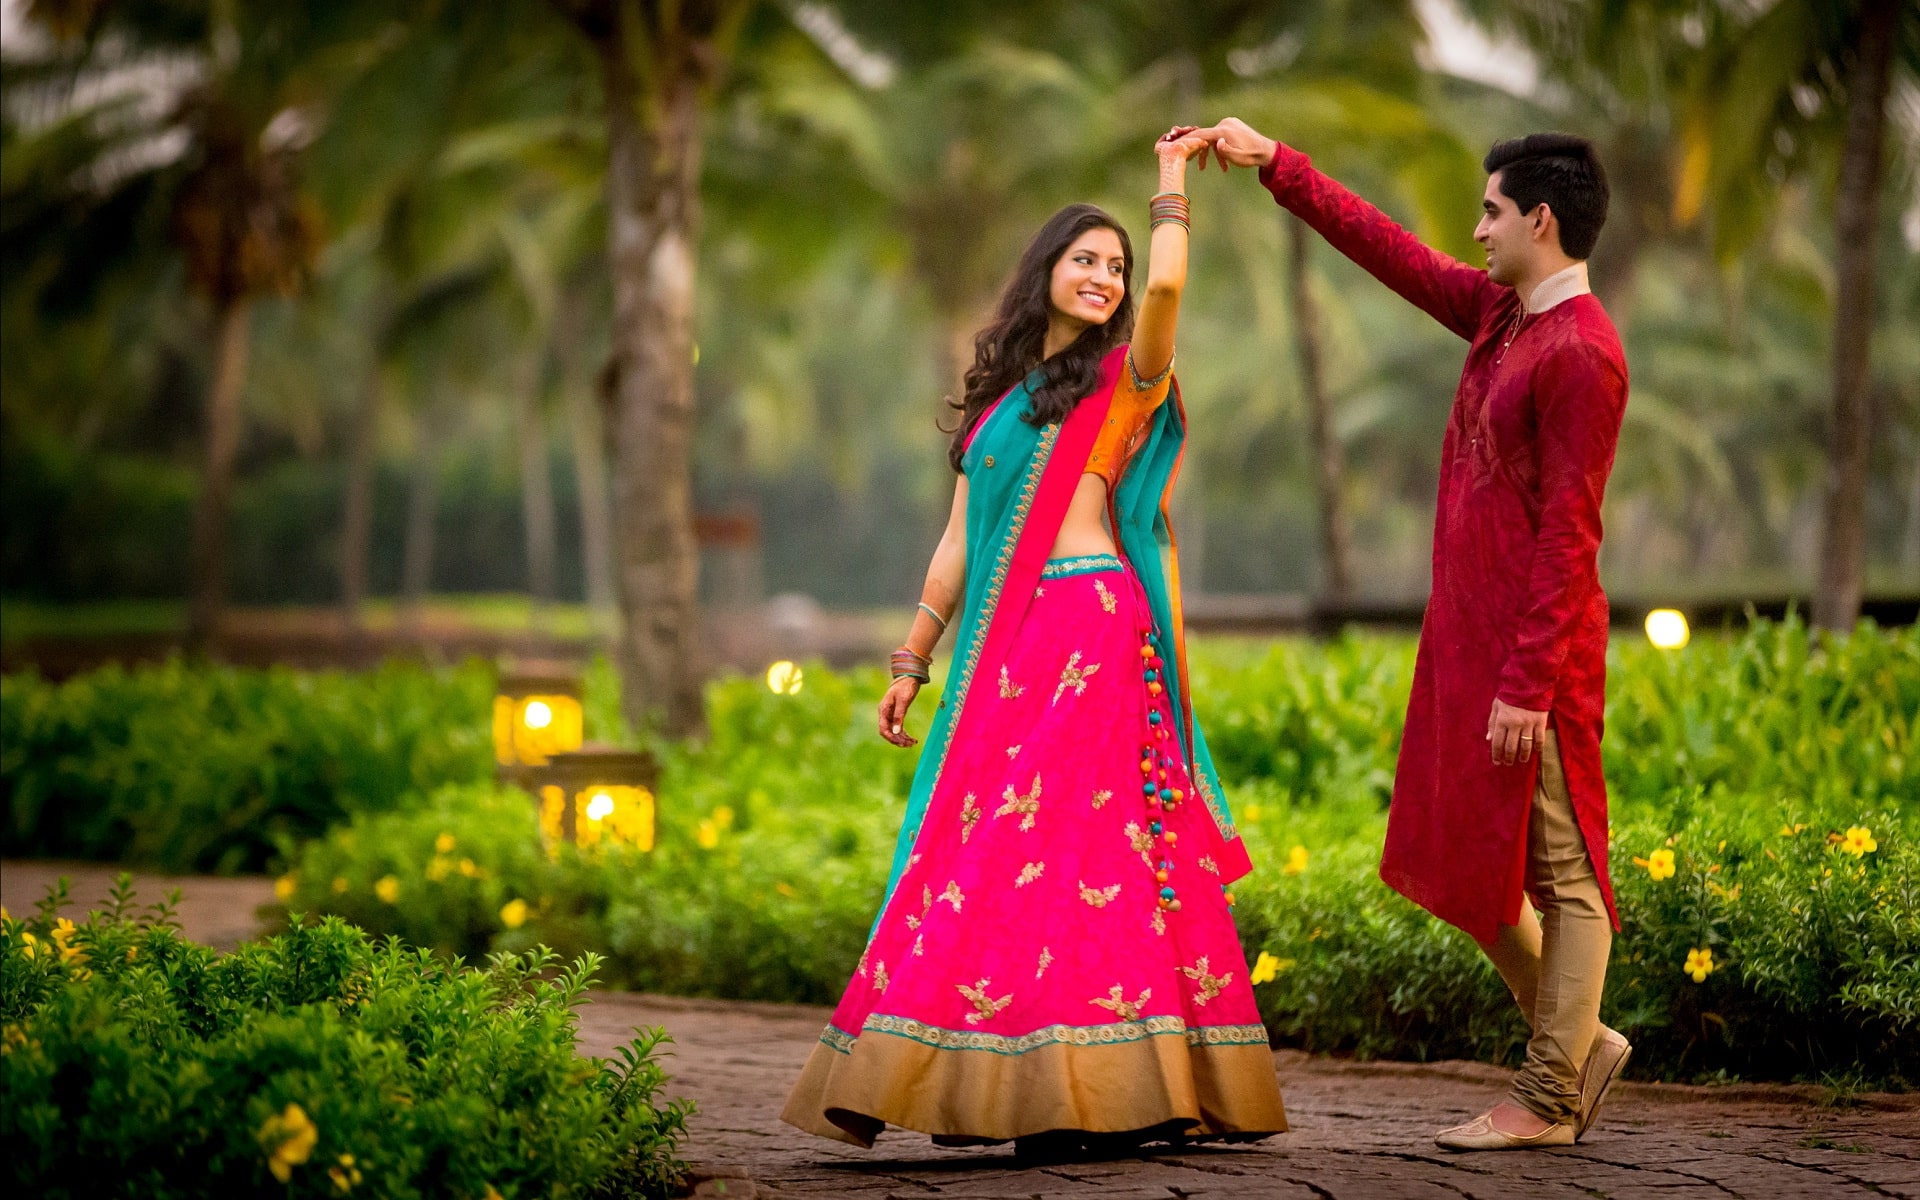 Free Indian Matrimony - One of the Best Matrimonial Sites in India